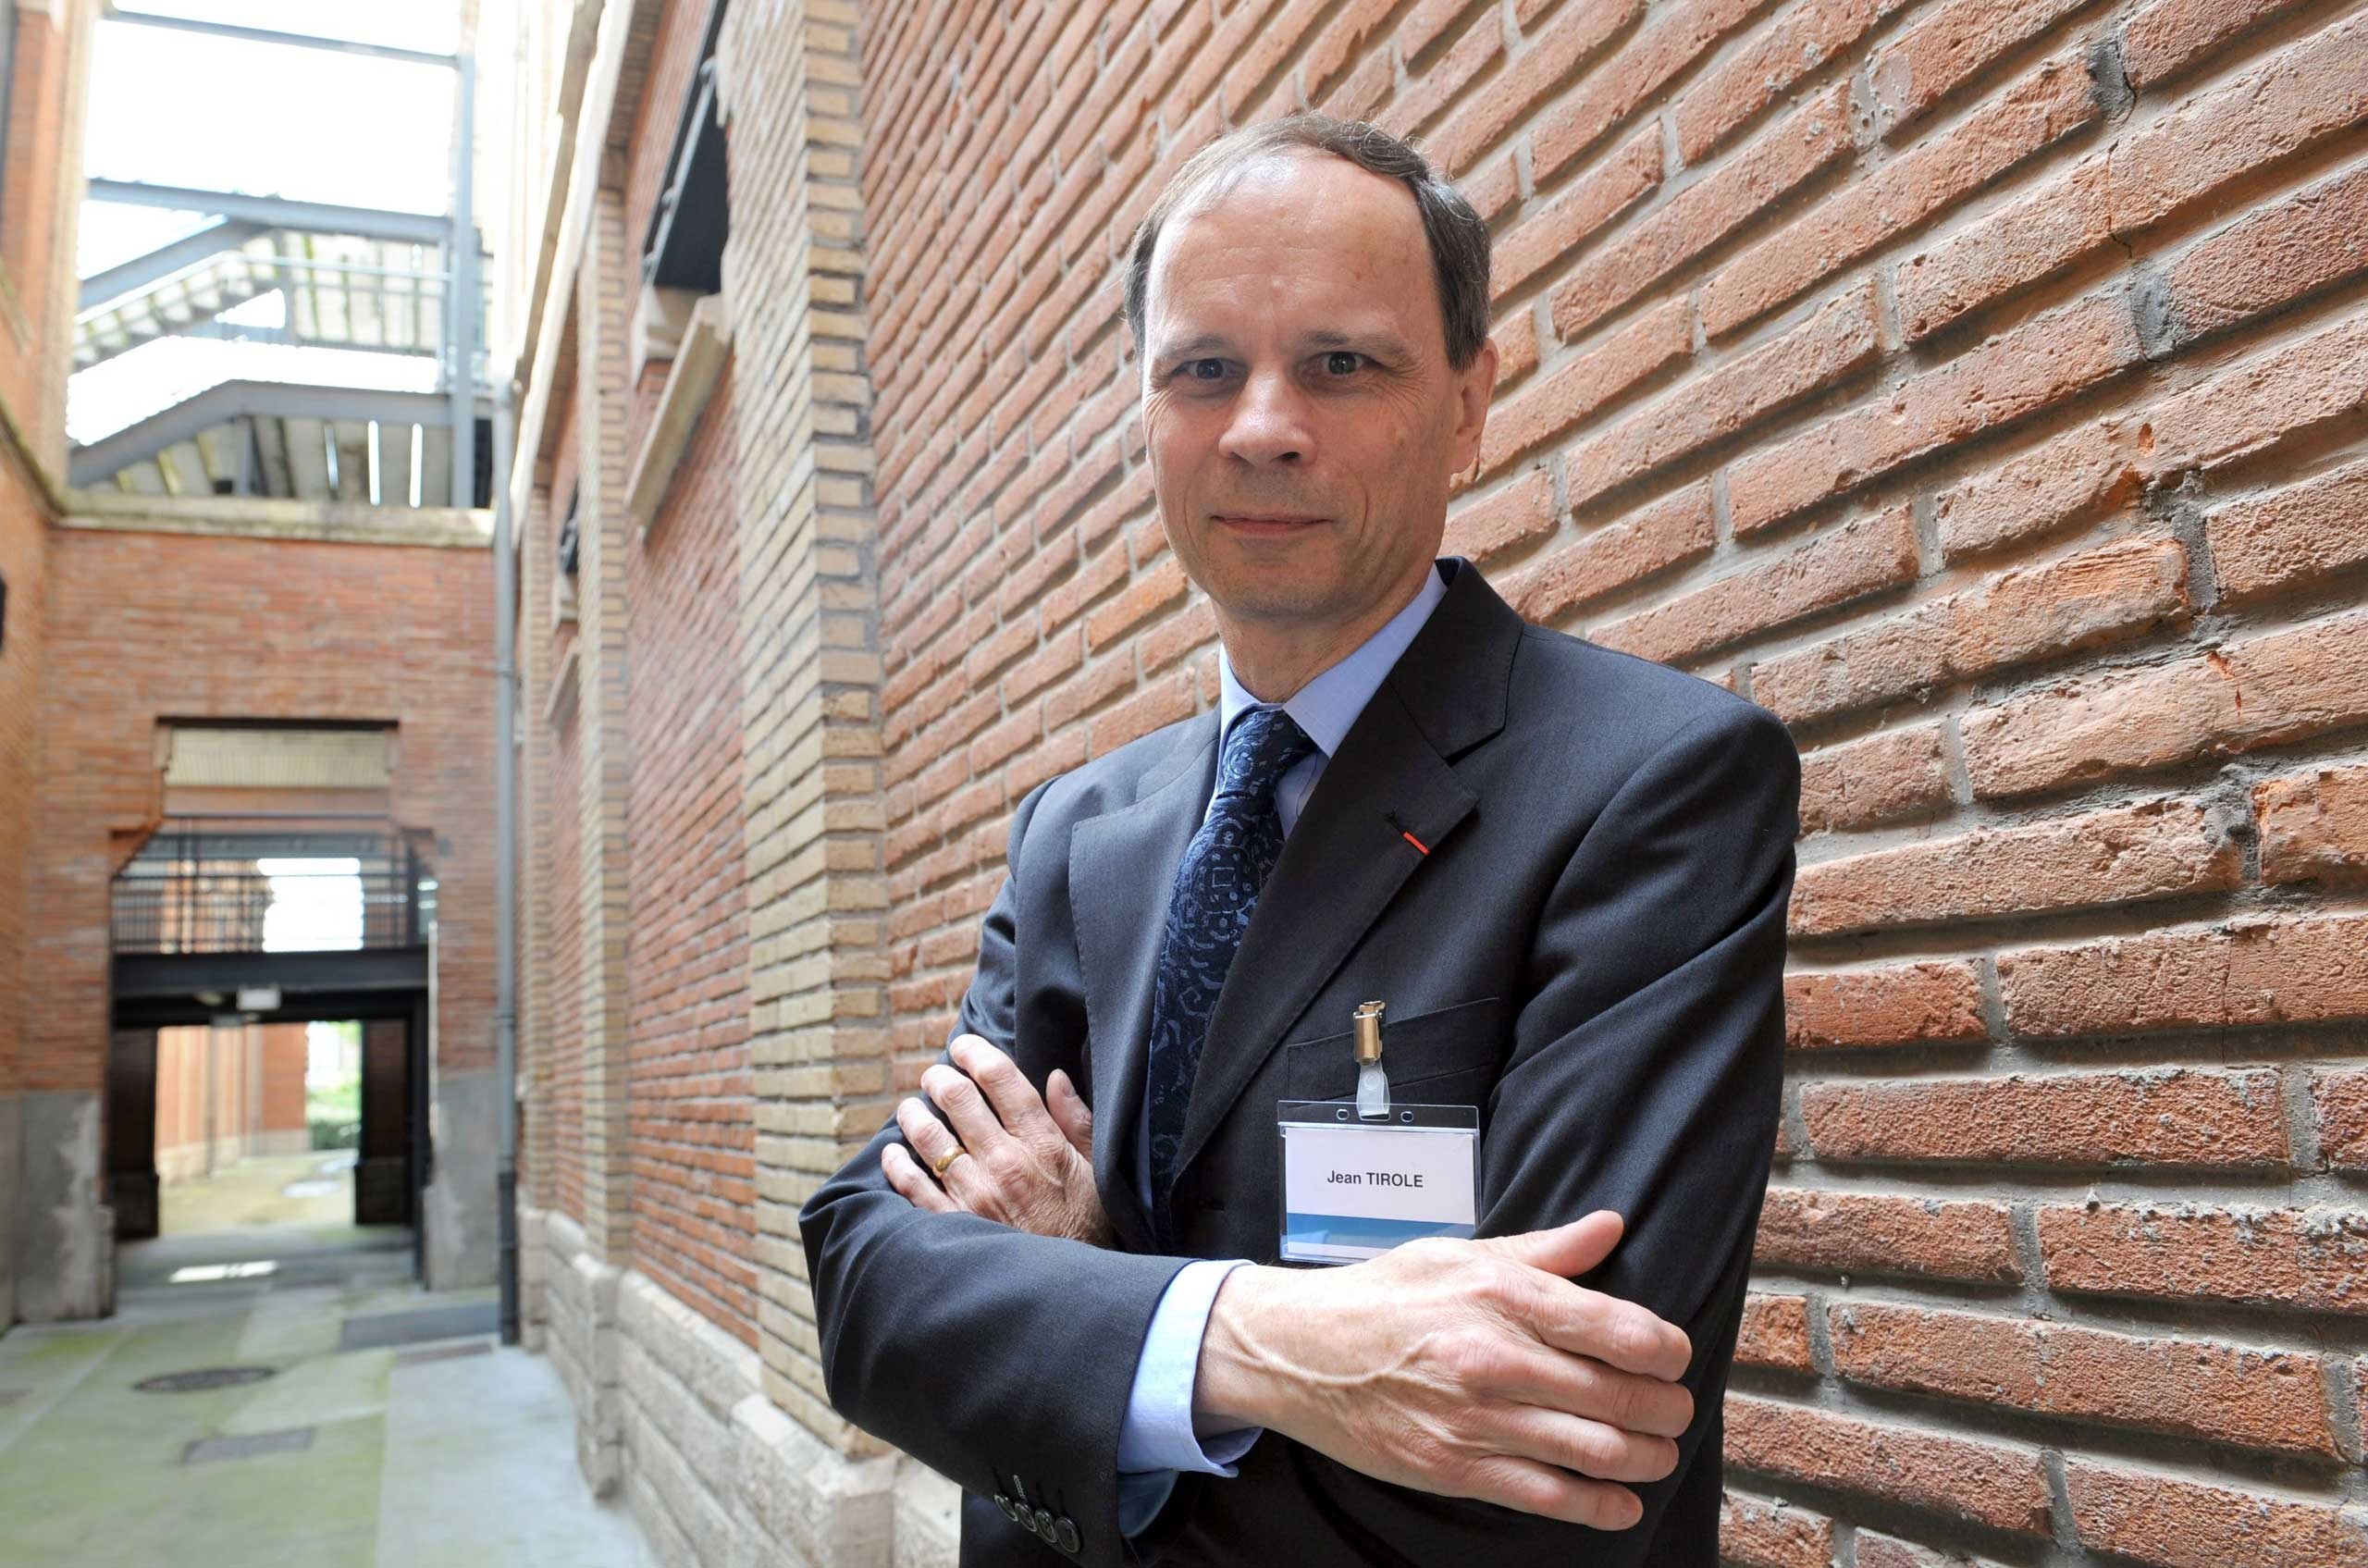 French economist Jean Tirole poses at the School of Economics in Toulouse, France on June 2, 2008.